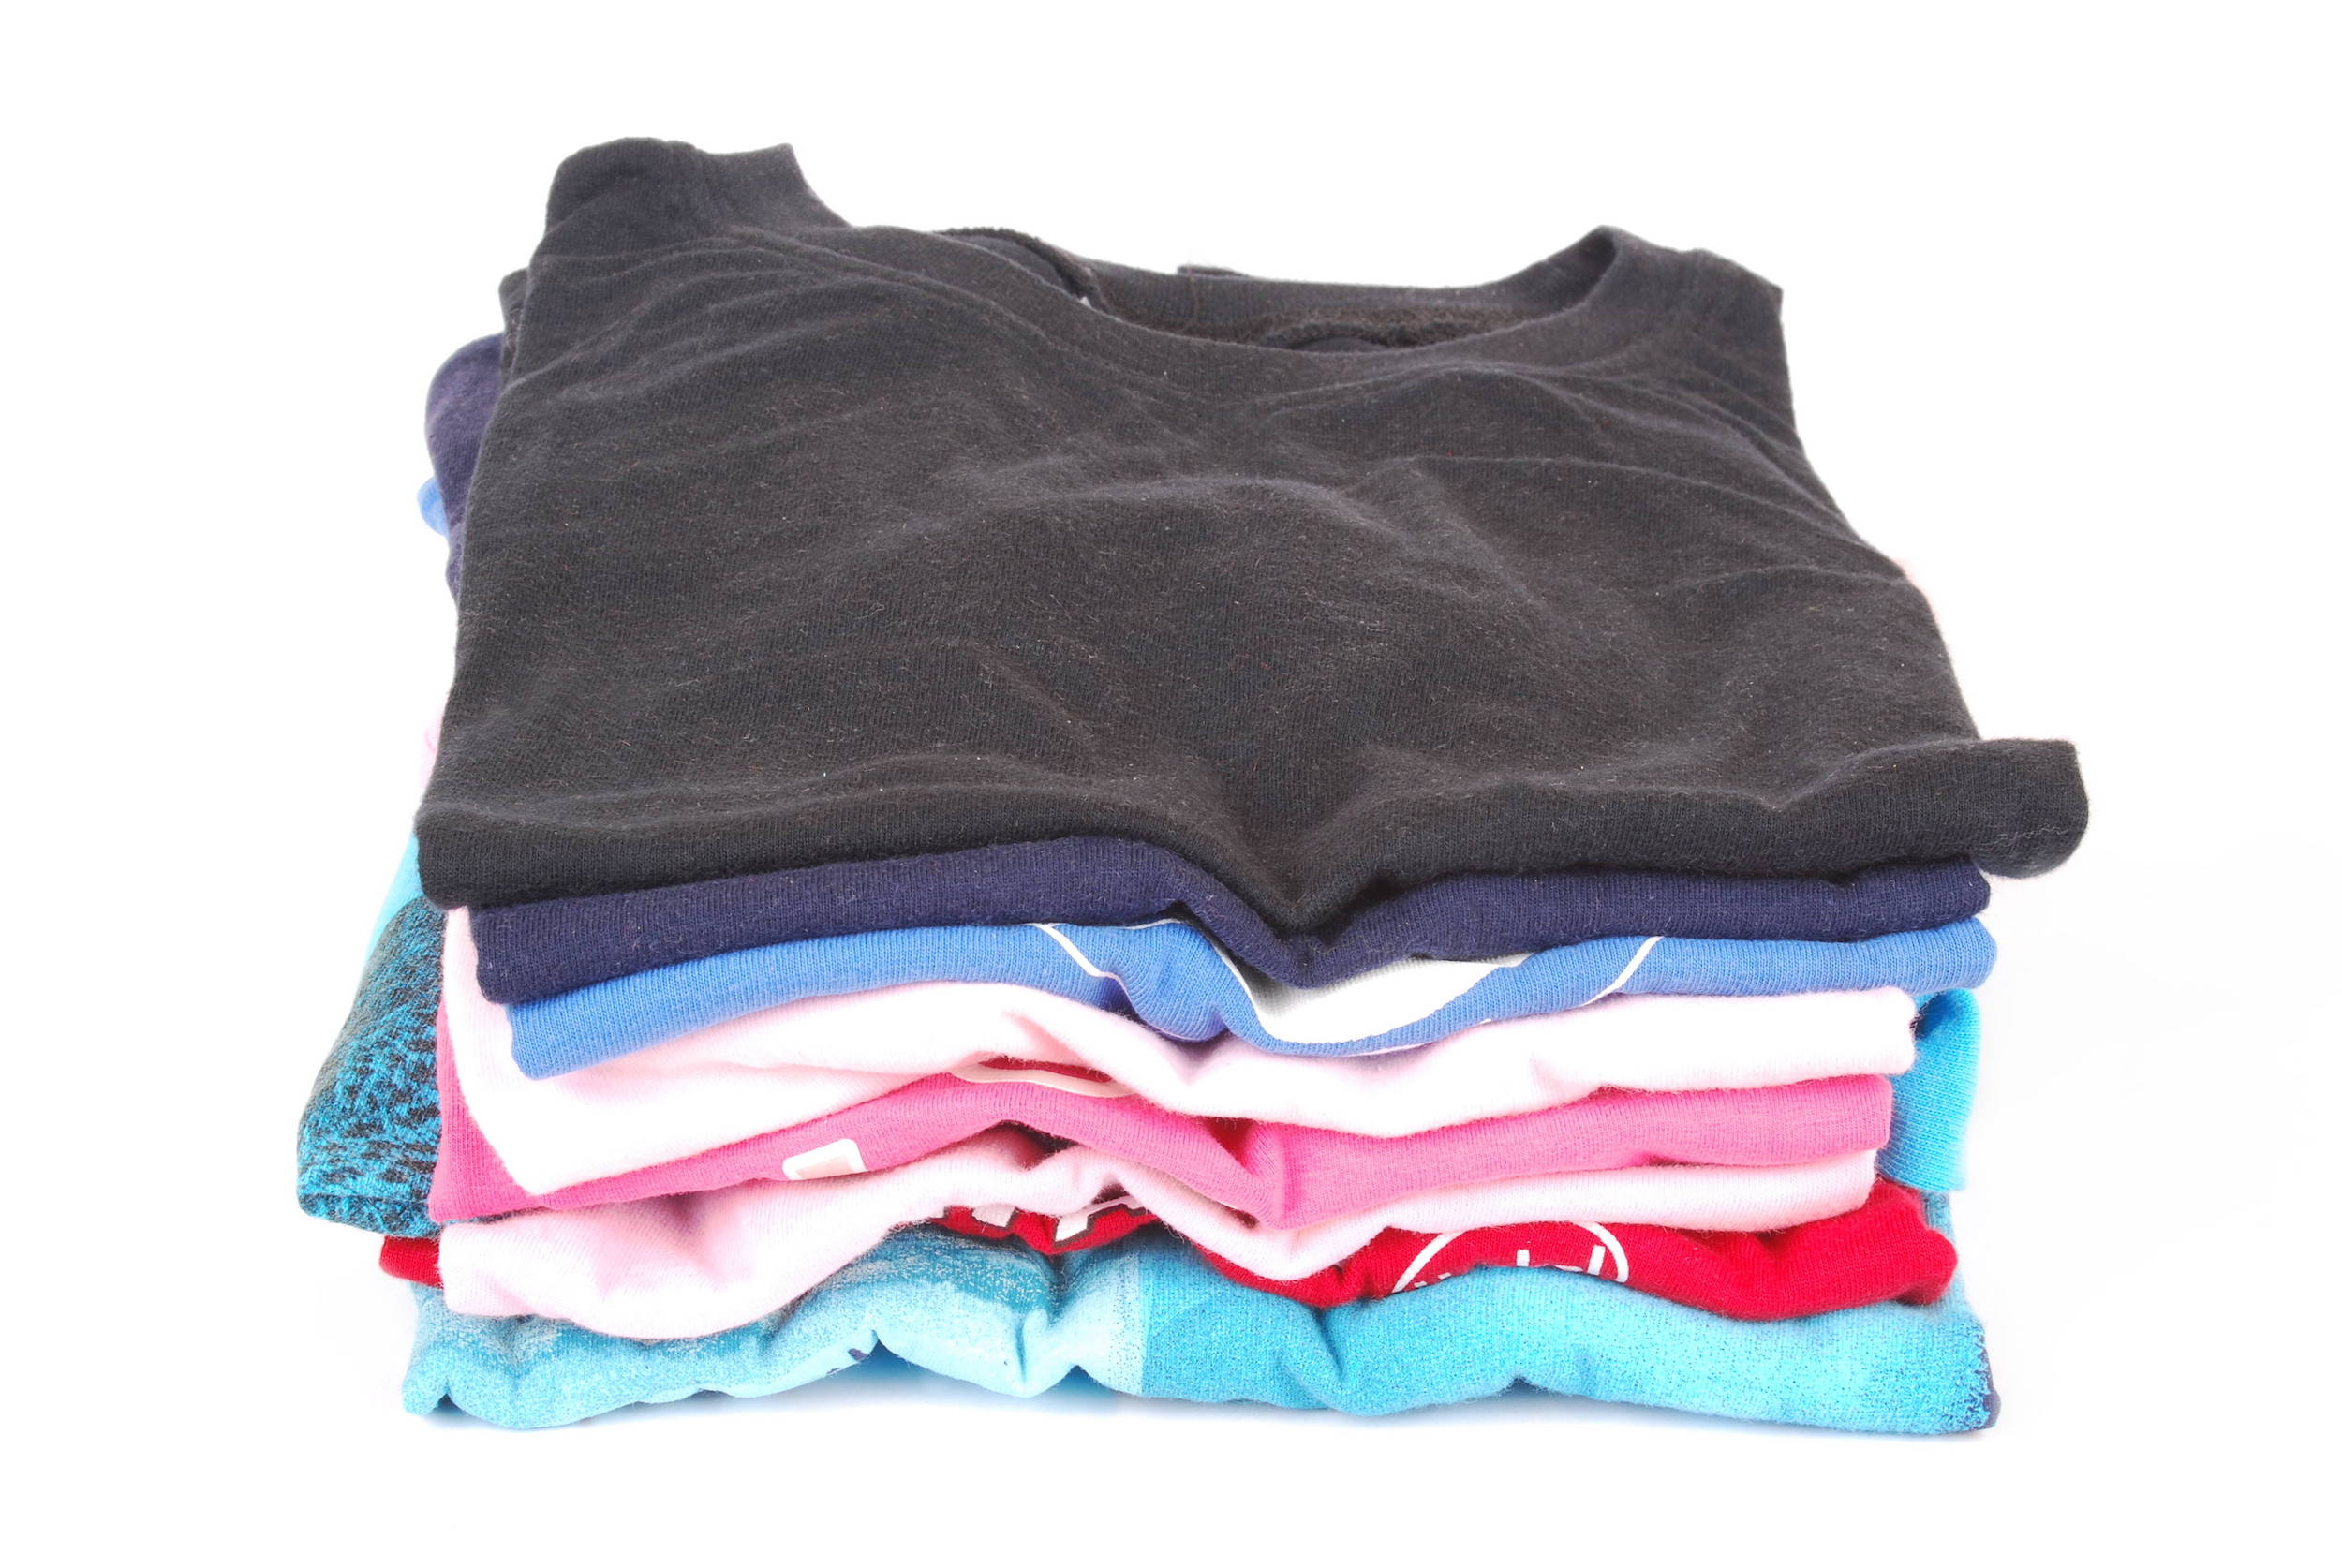 3 Reasons to Avoid Synthetic Clothing & Choose Natural Fabrics Instead